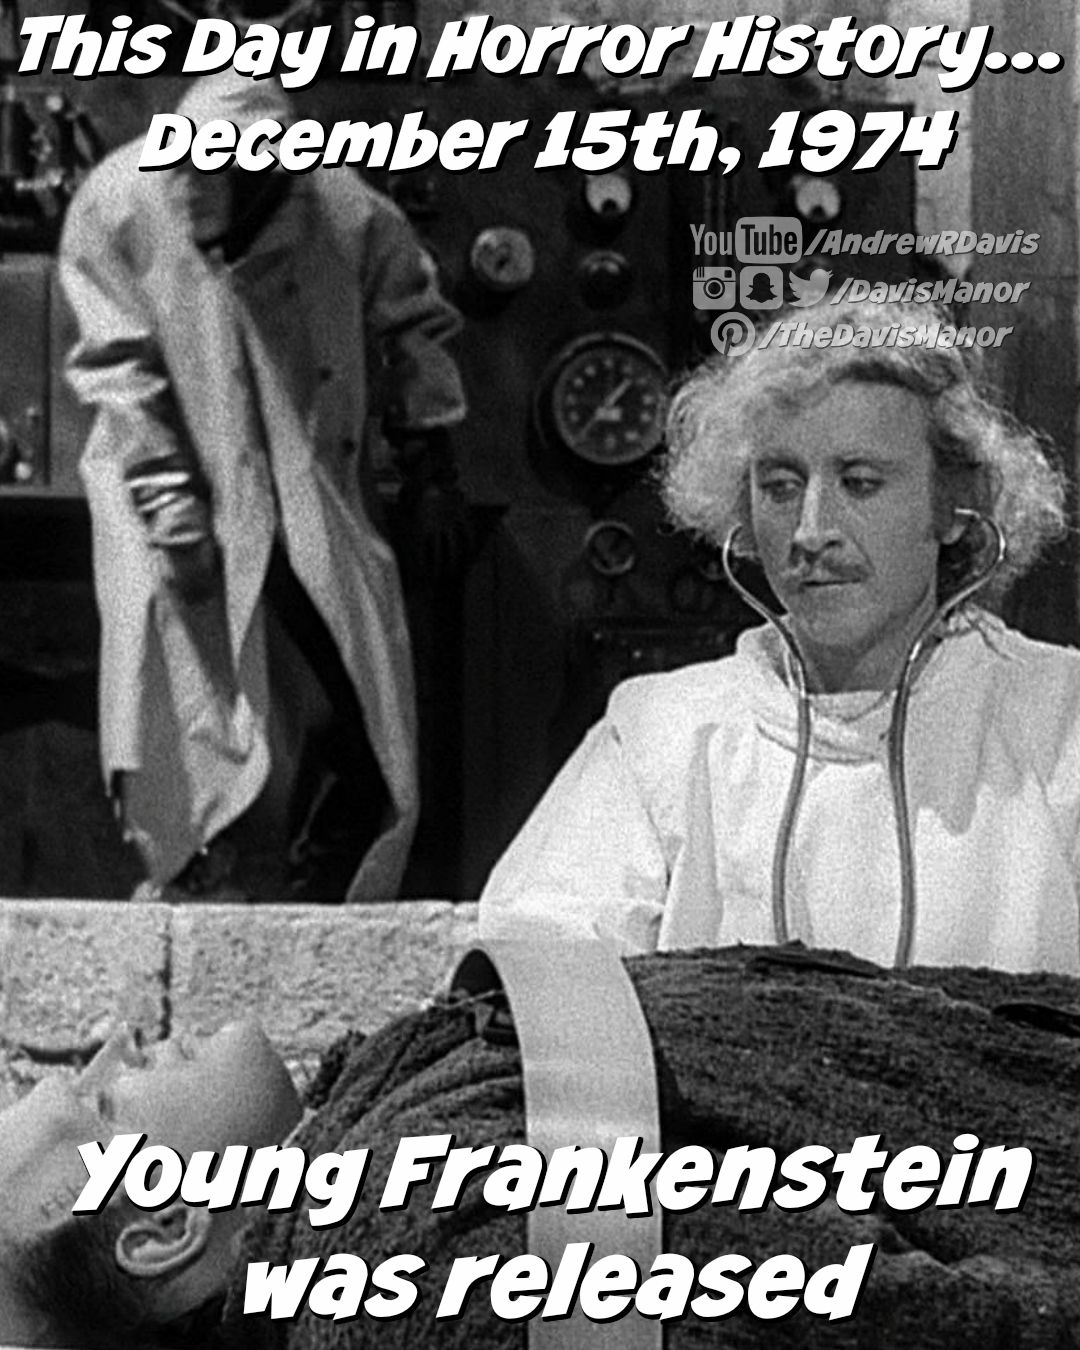 This Day in Horror History... December 15th, 1974 Young